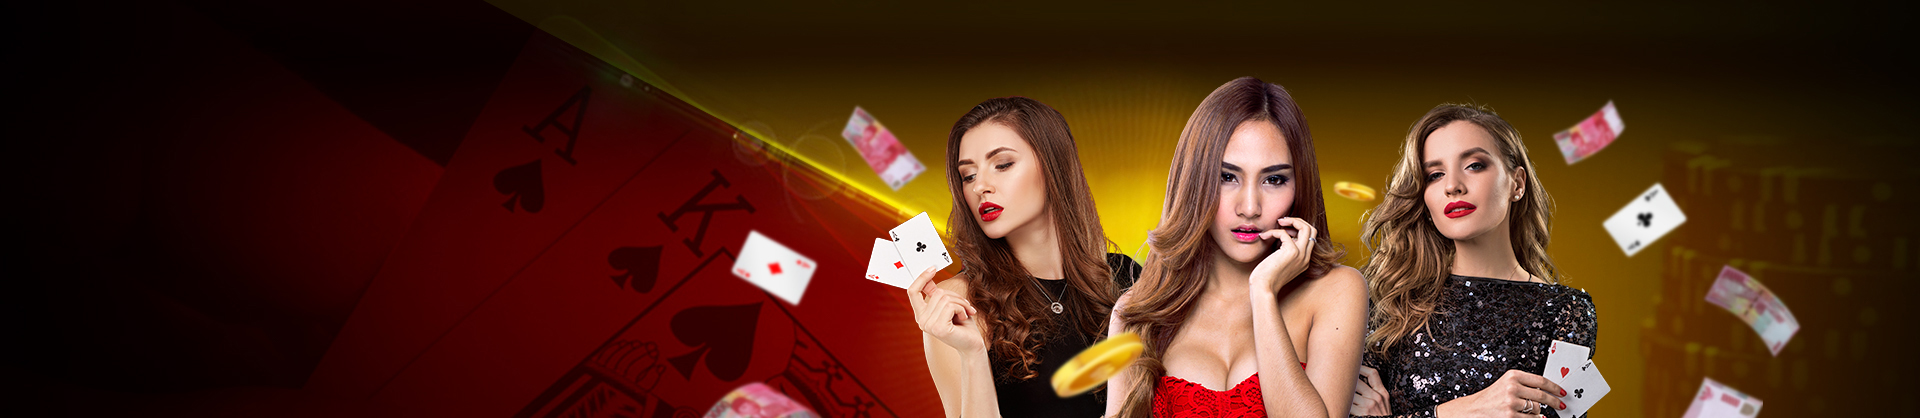 Banner Page Game Poker